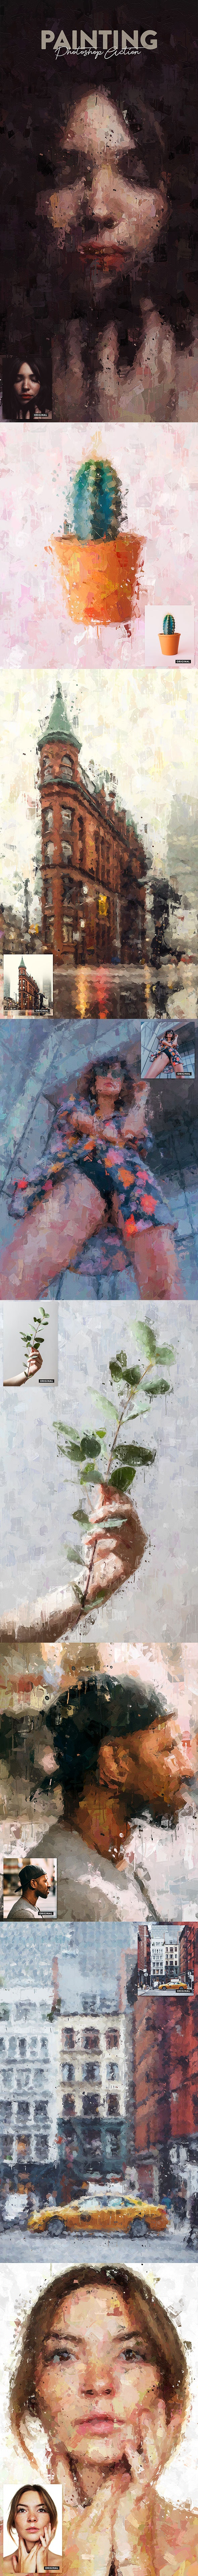 Painting Photoshop Action - Photo Effects Actions